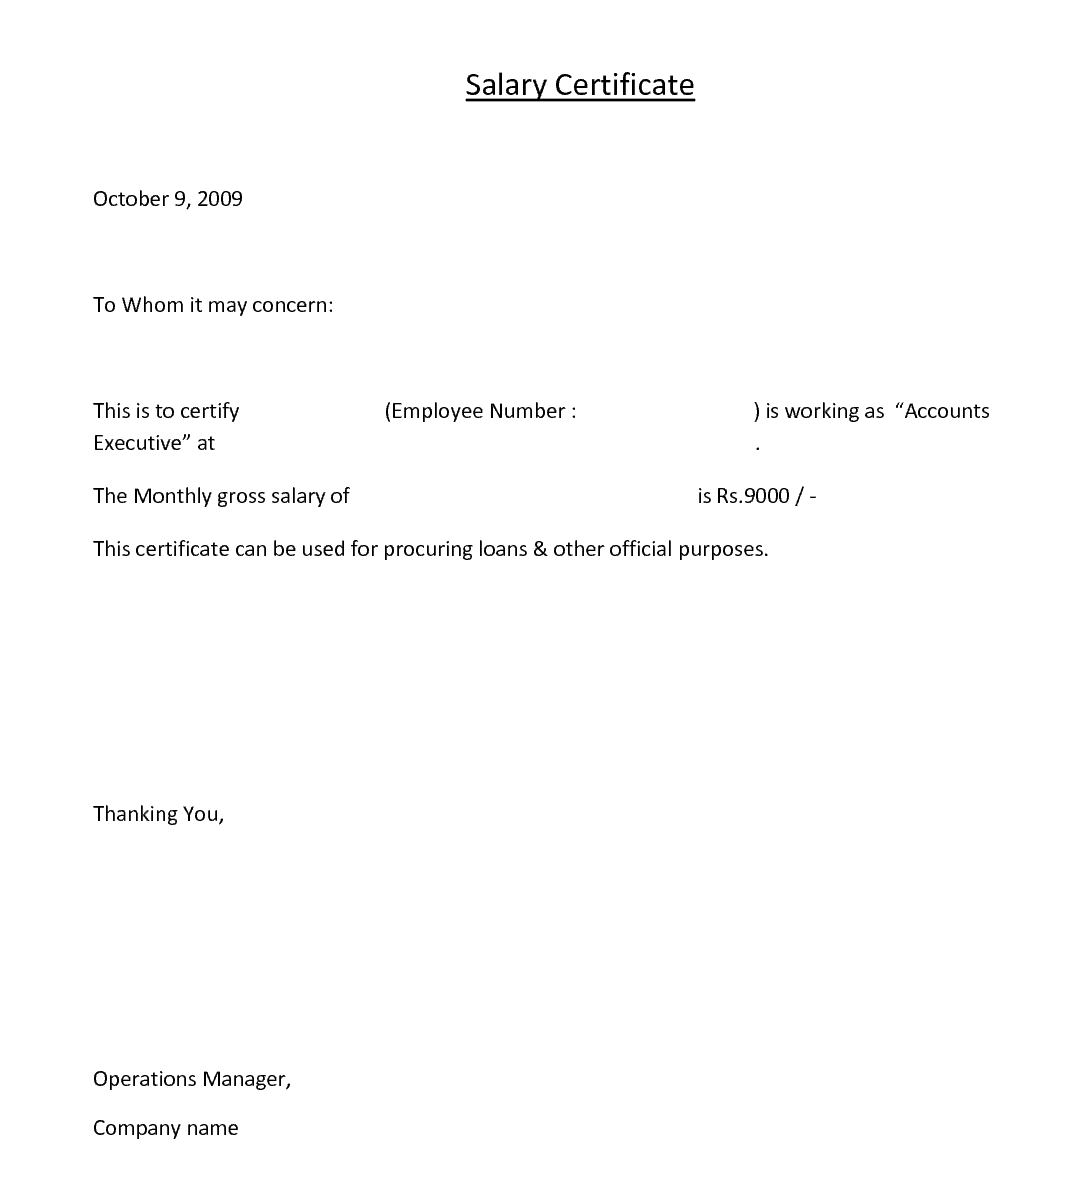 Top 5 Resources To Get Free Salary Certificate Templates   Word Templates,  Excel Templates